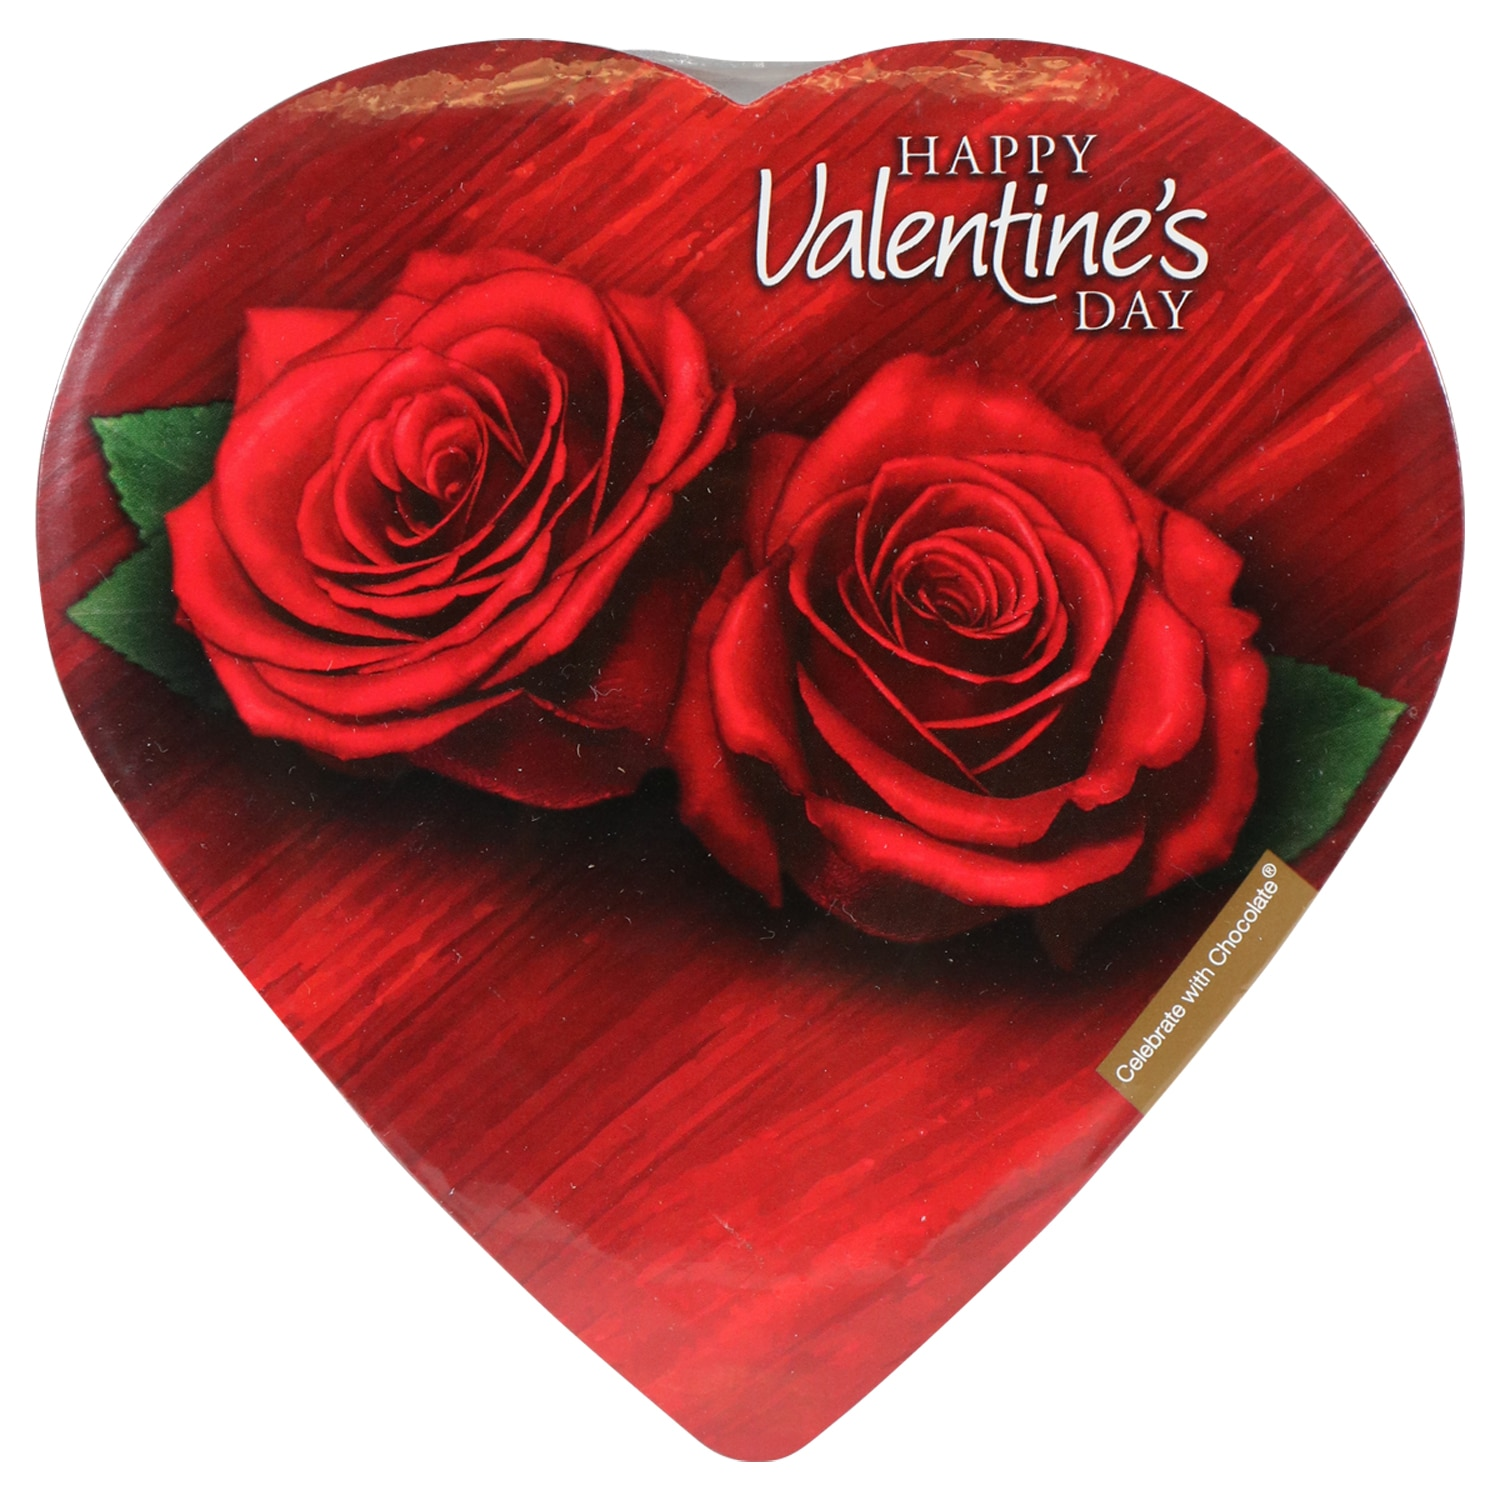 Celebrate With Chocolate Heart Shaped Assorted Chocolates 2 Oz Boxes